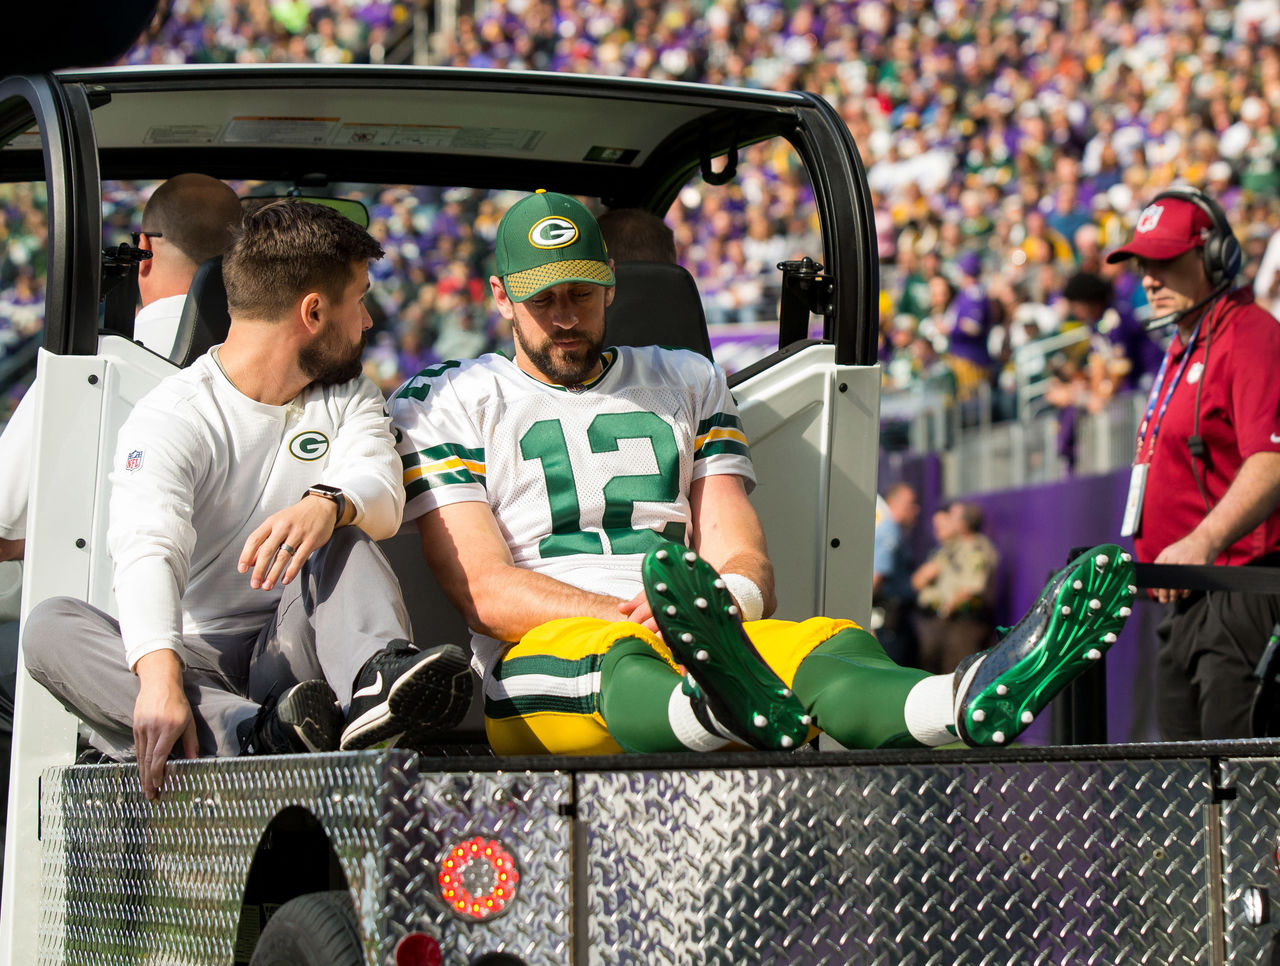 Cropped 2017 10 15t175012z 879051188 nocid rtrmadp 3 nfl green bay packers at minnesota vikings